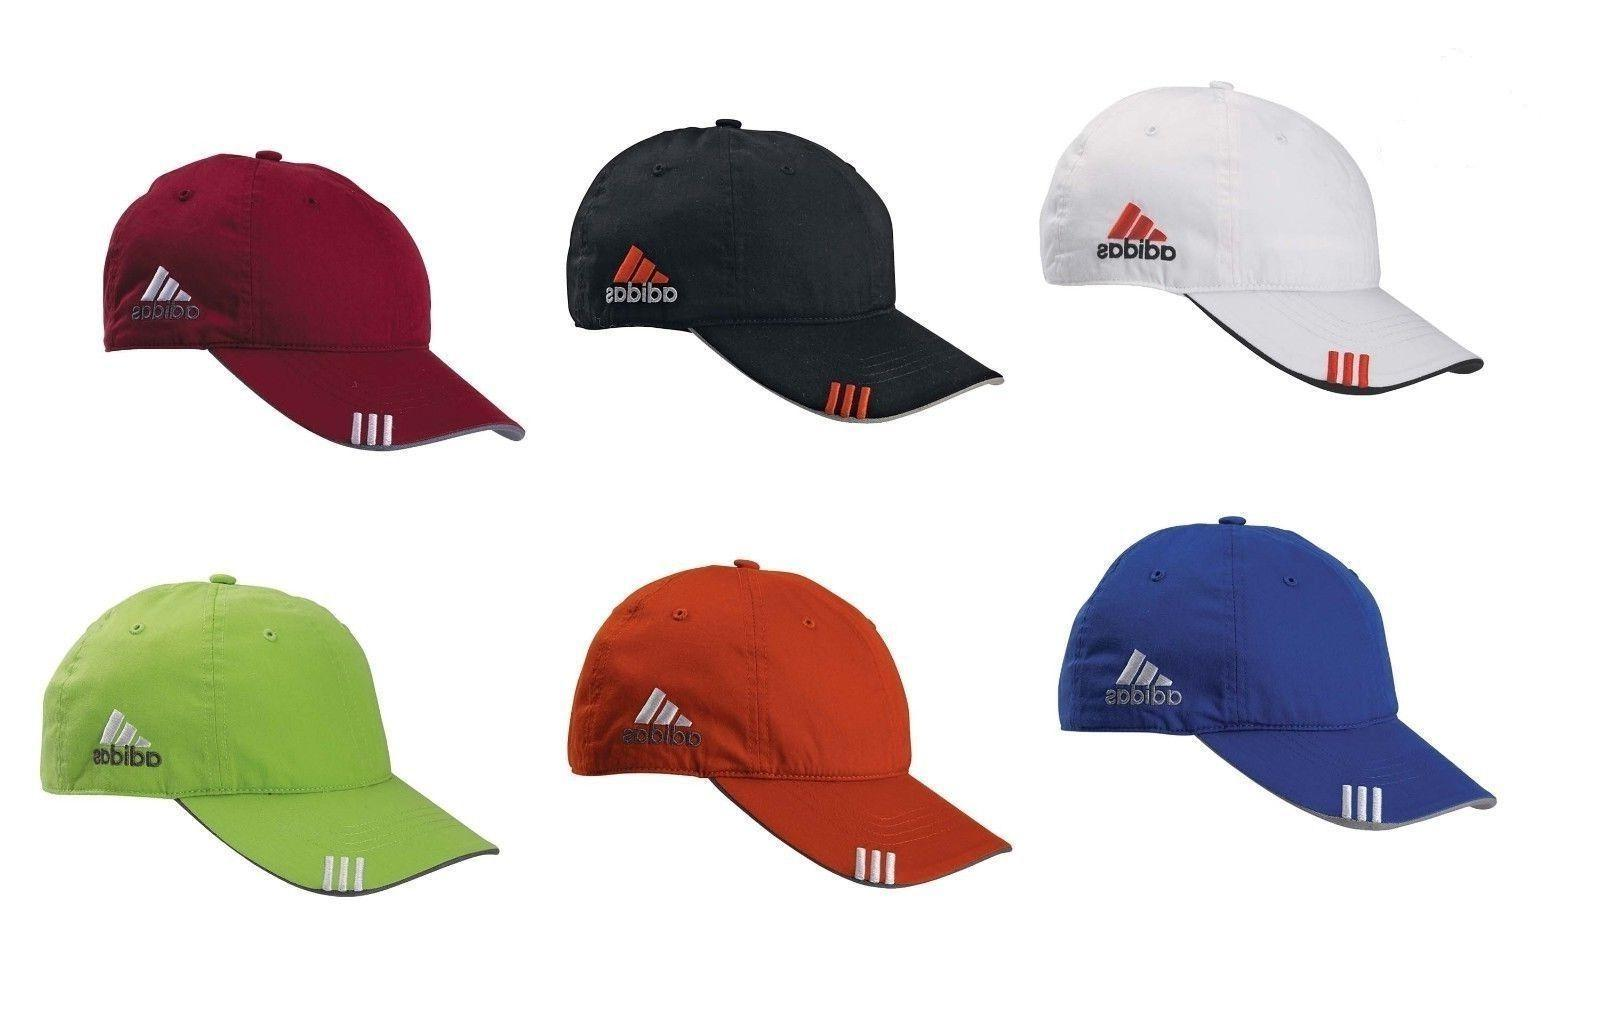 ADIDAS GOLF Baseball Unstructured Structure Hat